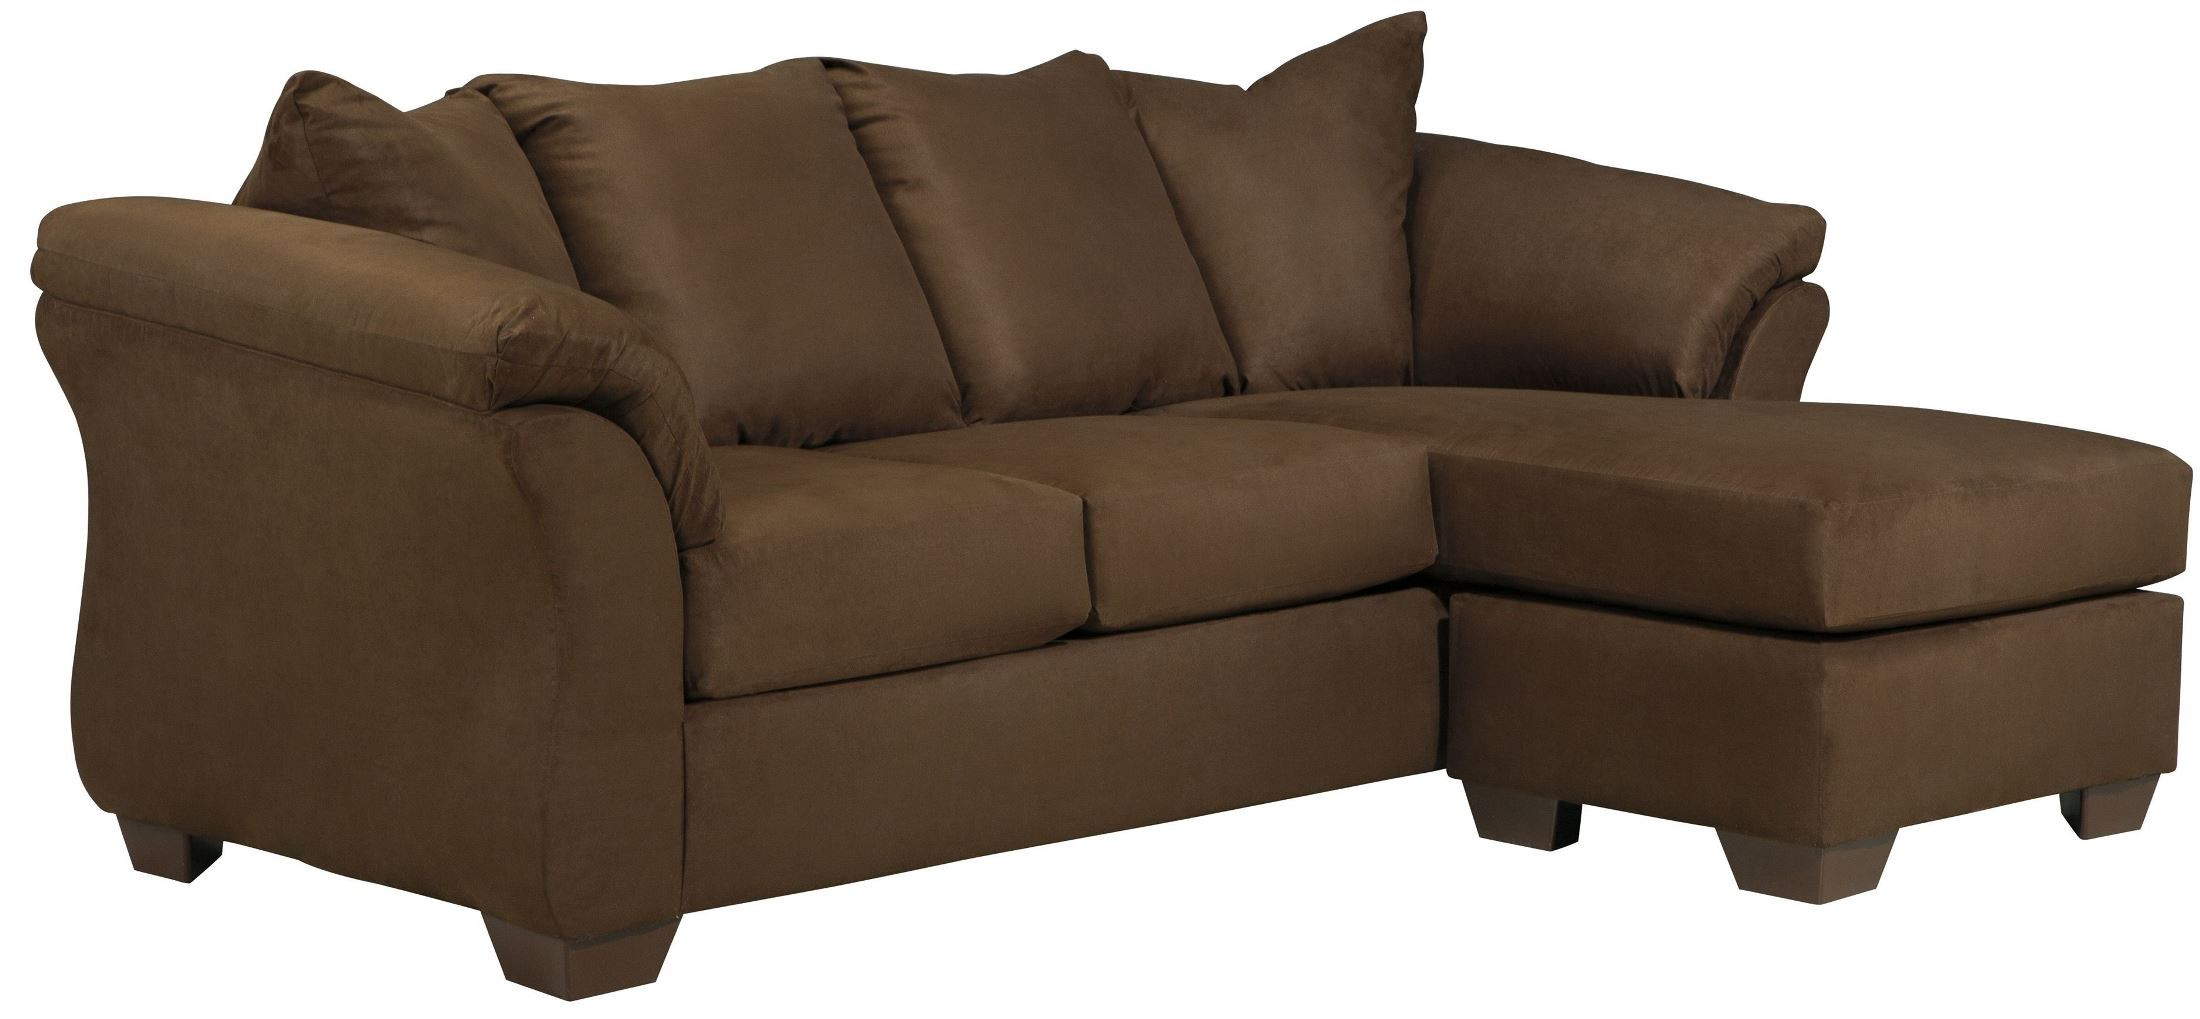 Darcy cafe chaise sectional from ashley 7500418 for Chaise restaurant